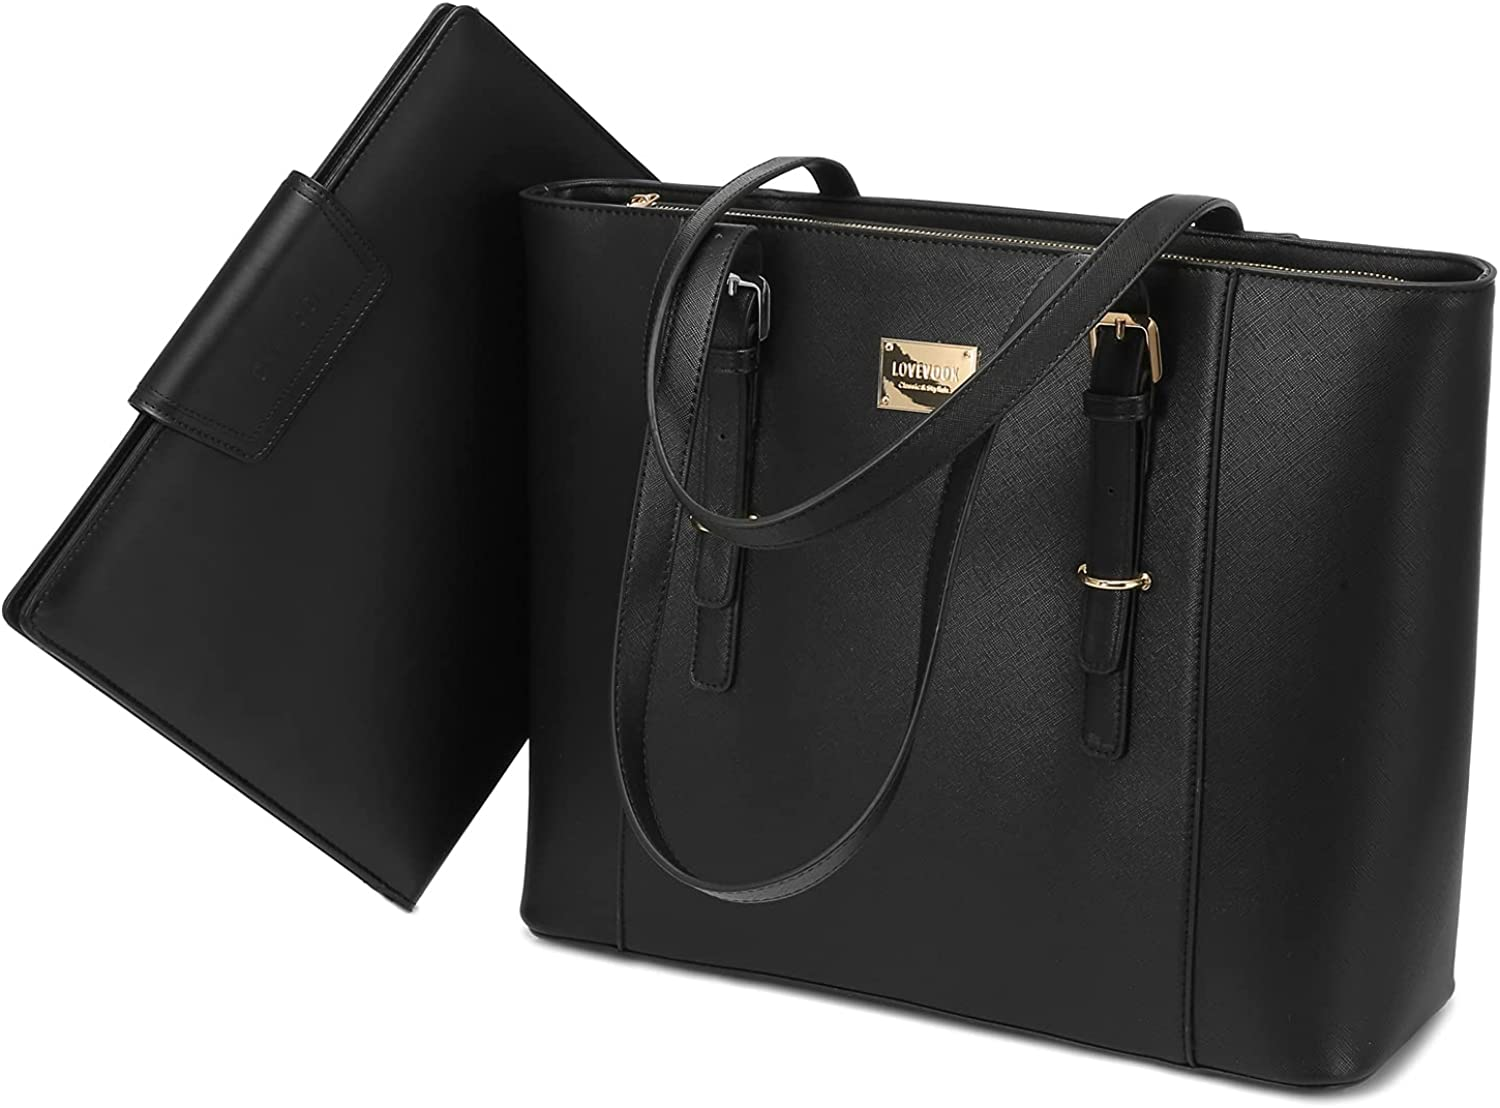 Laptop Bag for Women Large Office Handbags Briefcase Fits Up to 15.6 inch (Updated Version)